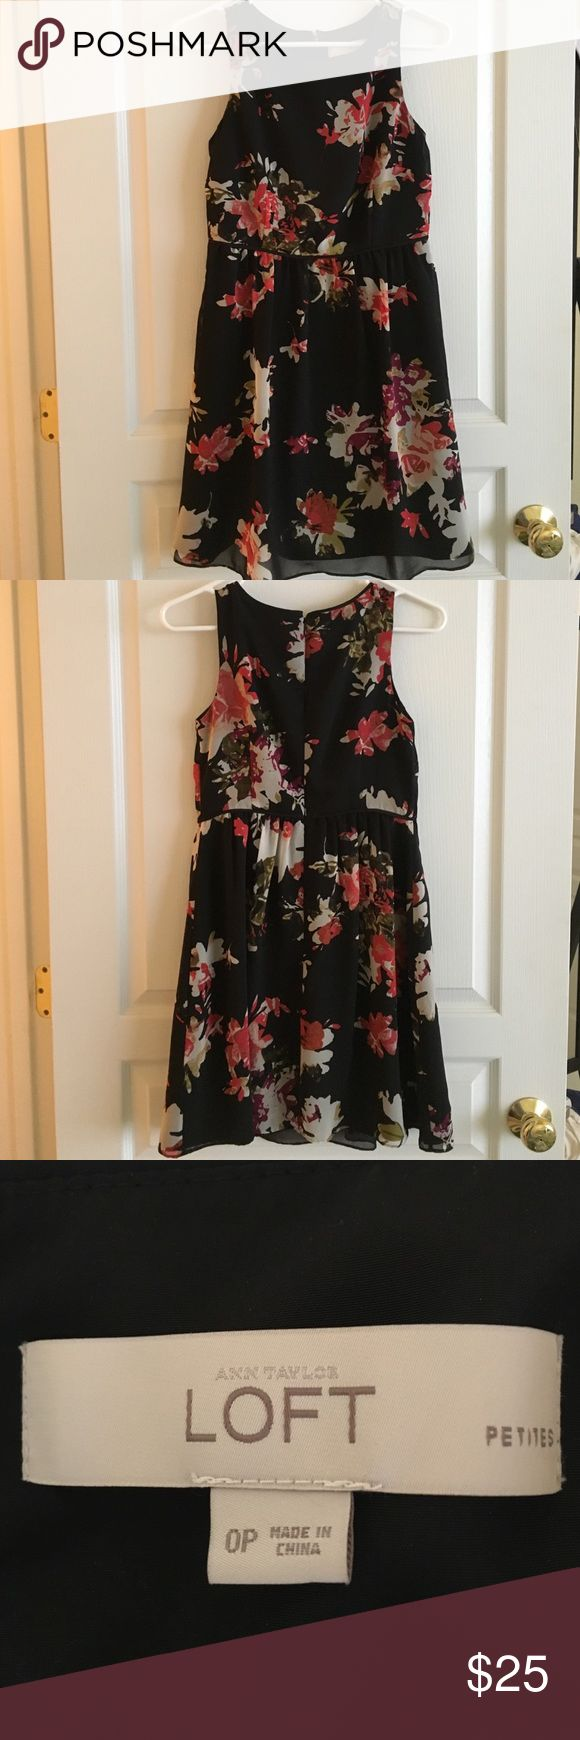 Petite Flora Ann Taylor Loft dress Subdued floral for the winter. Pairs perfectly with your favorite cardigan! LOFT Dresses